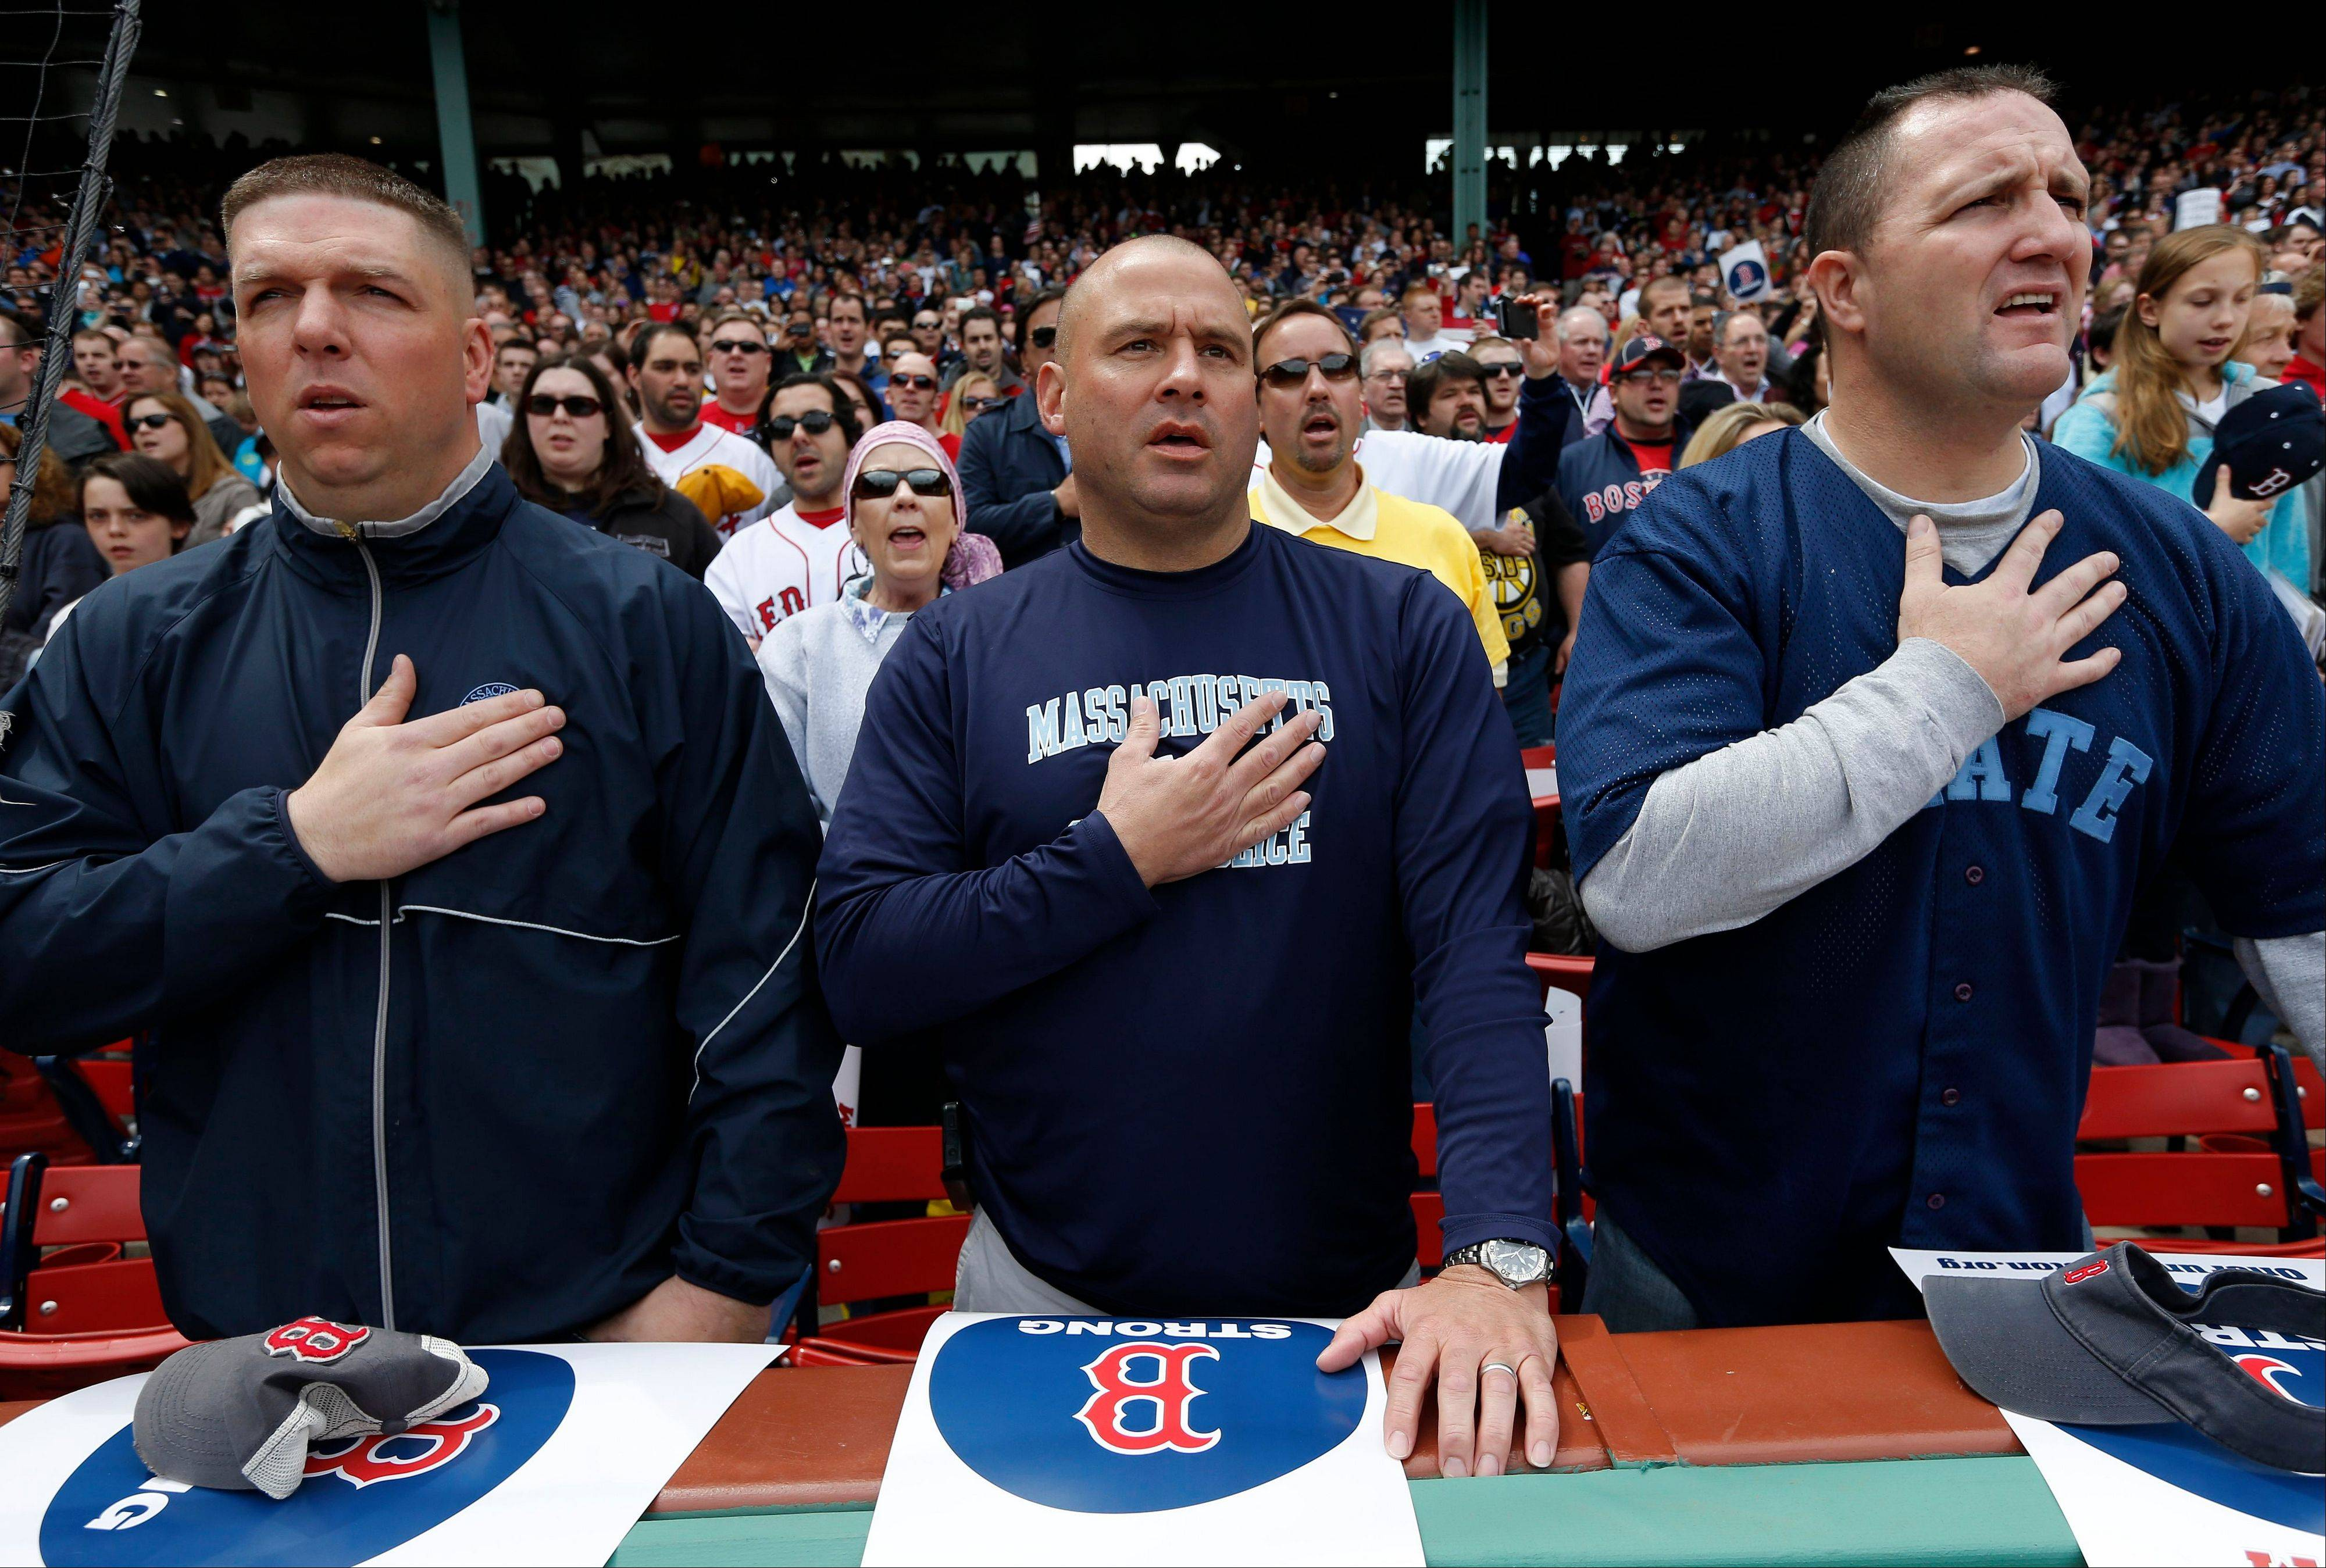 Three members of the Massachusetts State Police place their hands over their heart during the national anthem before a baseball game between the Boston Red Sox and the Kansas City Royals in Boston, Saturday, April 20, 2013.